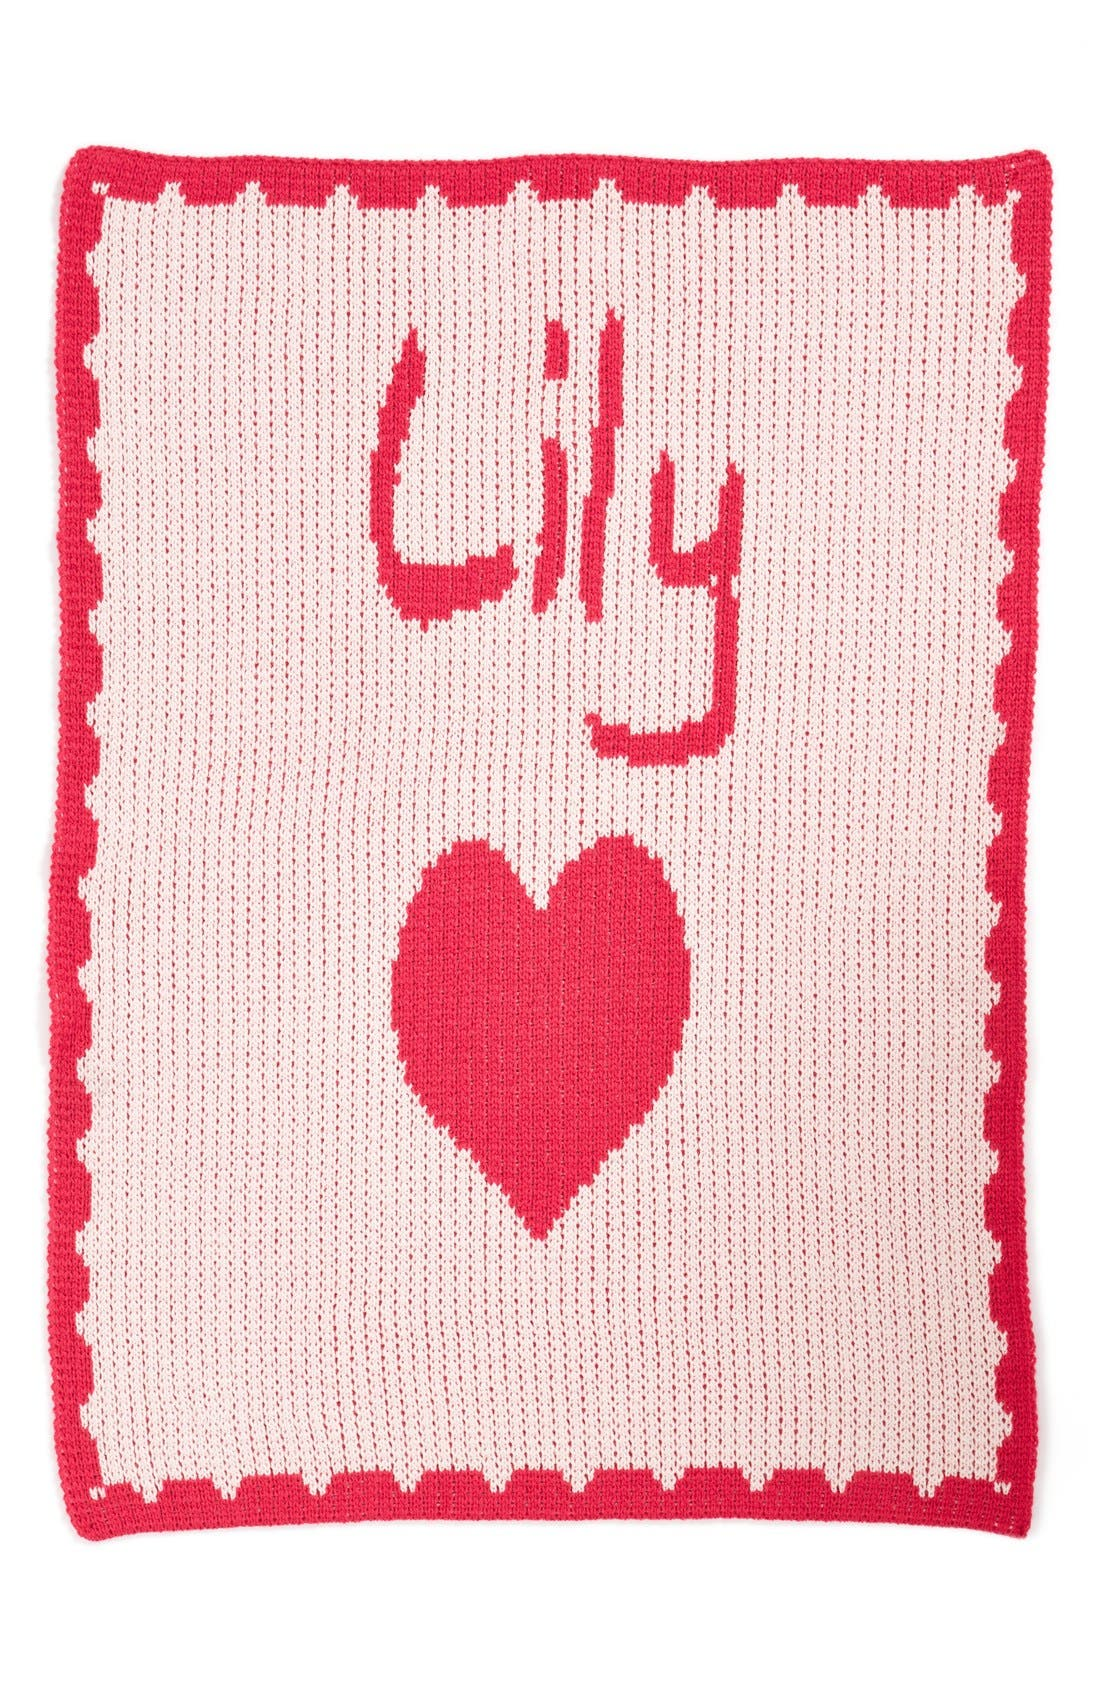 Main Image - Butterscotch Blankees 'Hearts - Small' Personalized Stroller Blanket